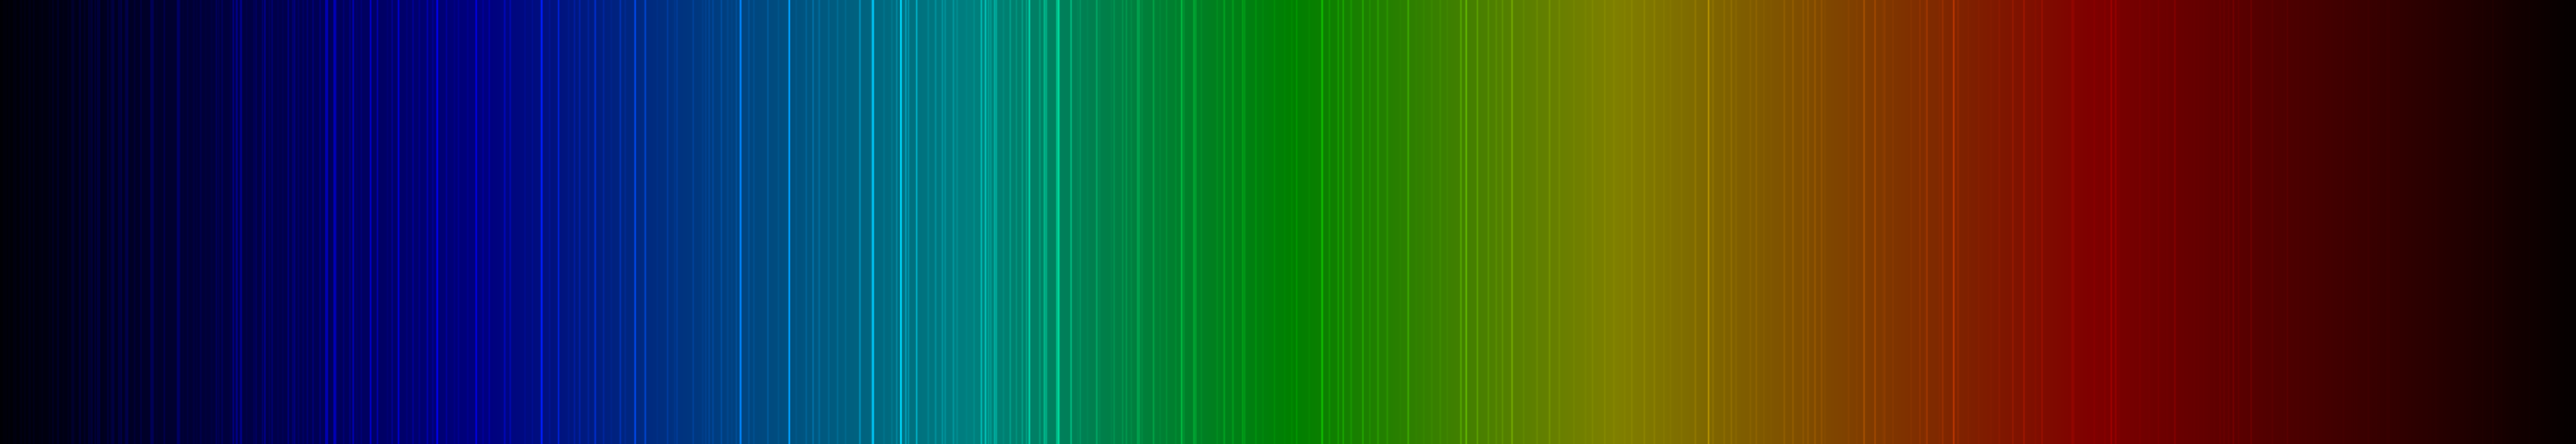 Color lines in a spectral range